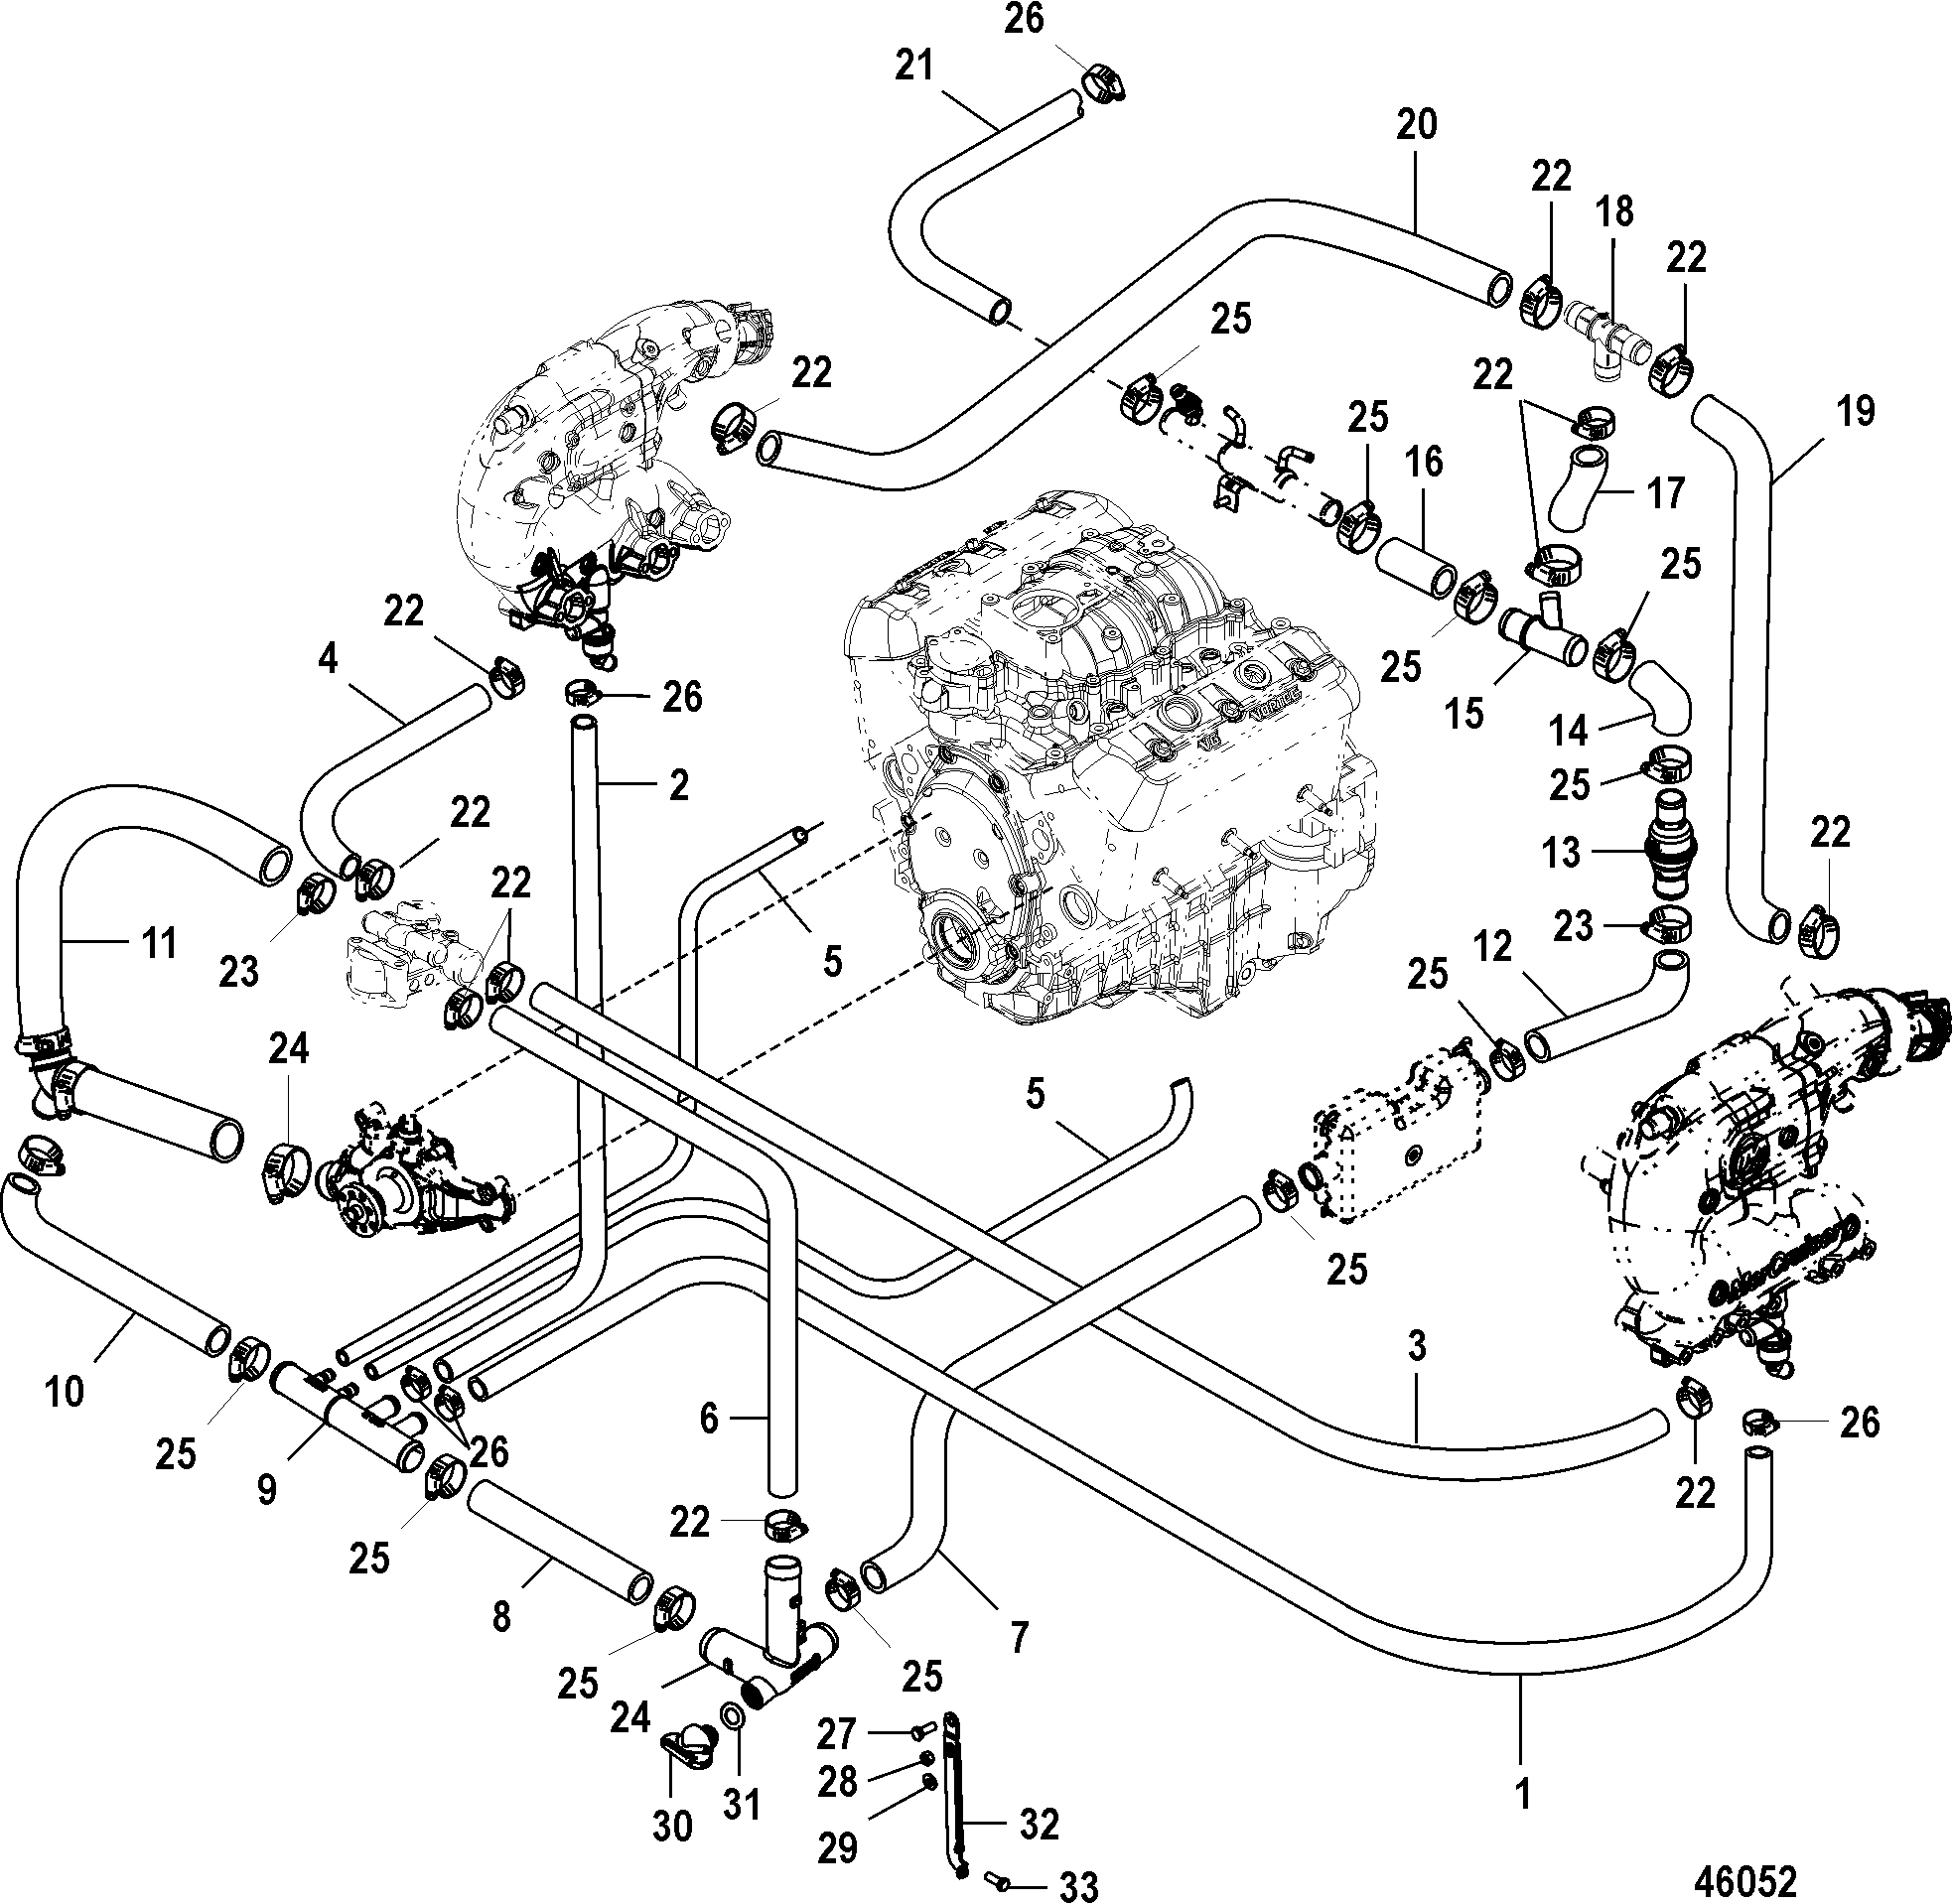 Chevy 4 3 Engine Diagram Guide And Troubleshooting Of Wiring Gm 3l Vortec Images Gallery